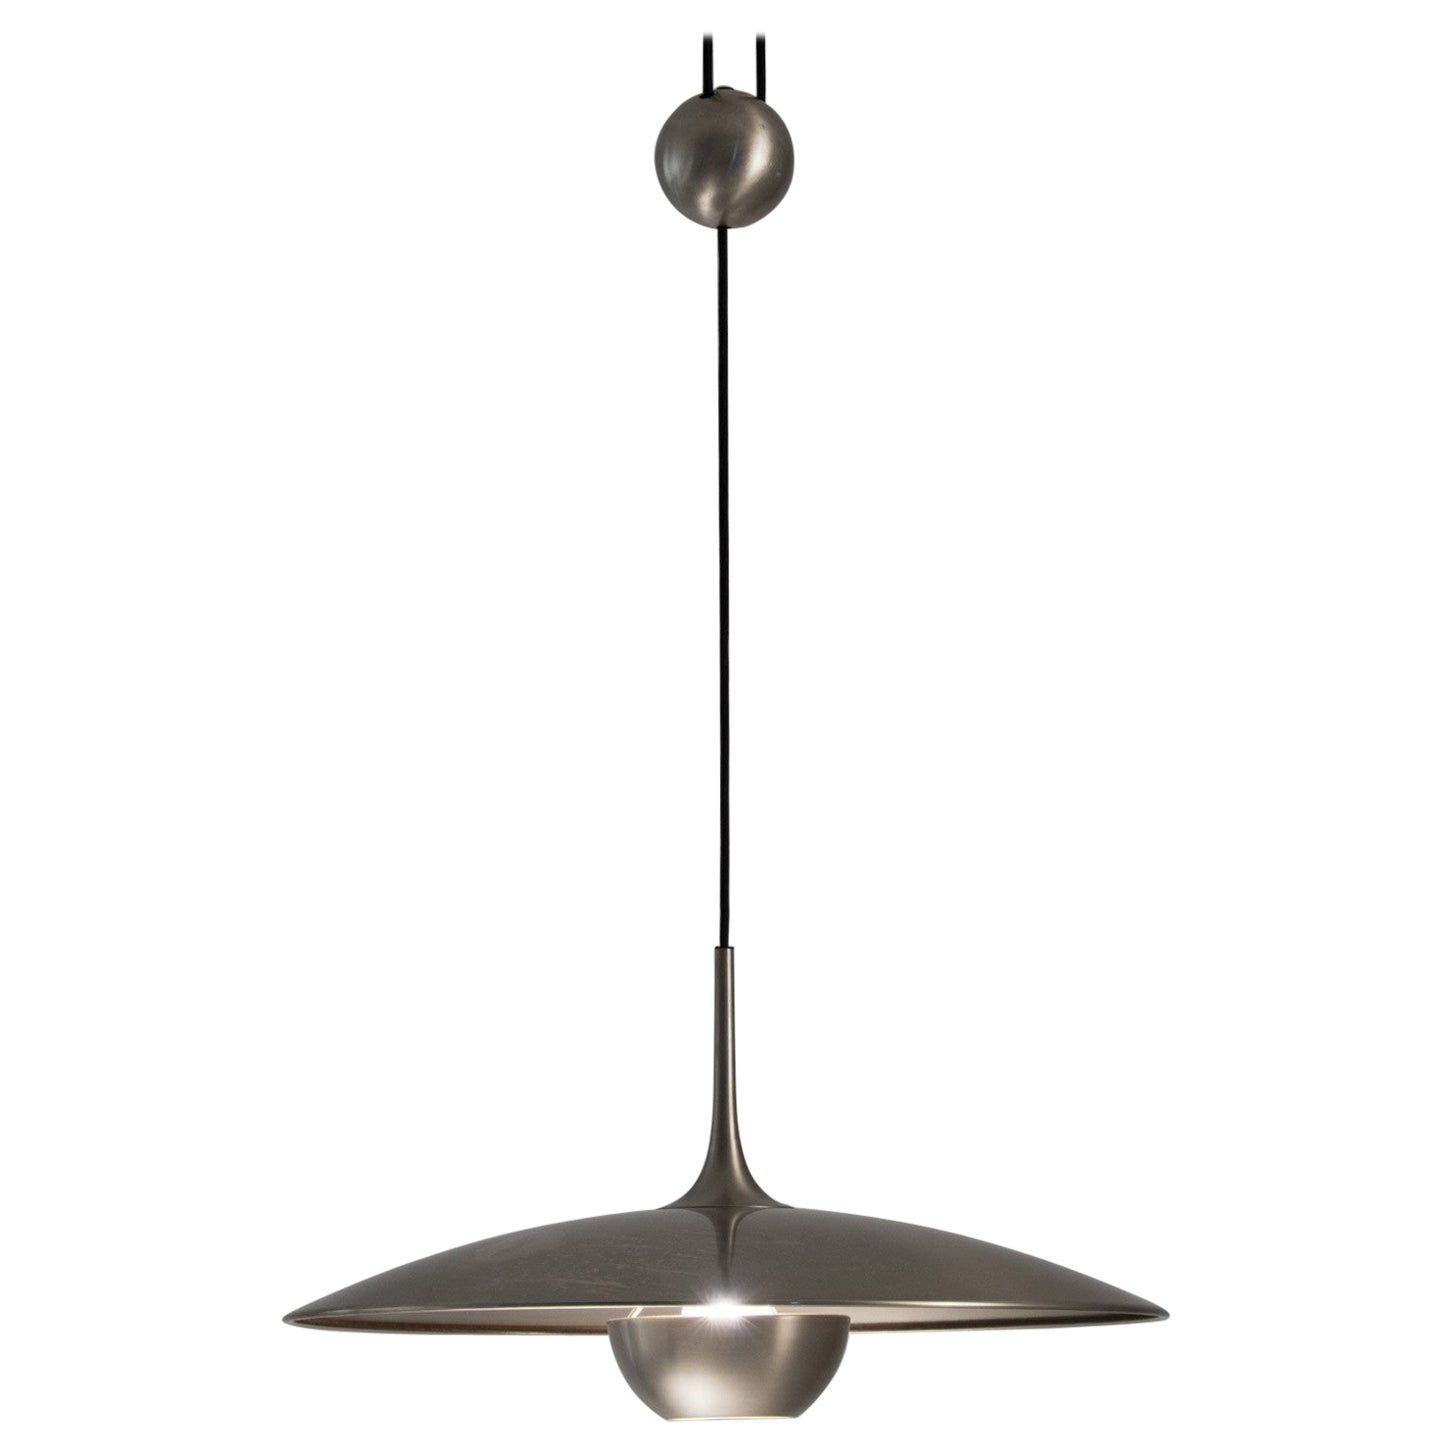 Florian Schulz 'Onos 55' Pendant with Counterweight